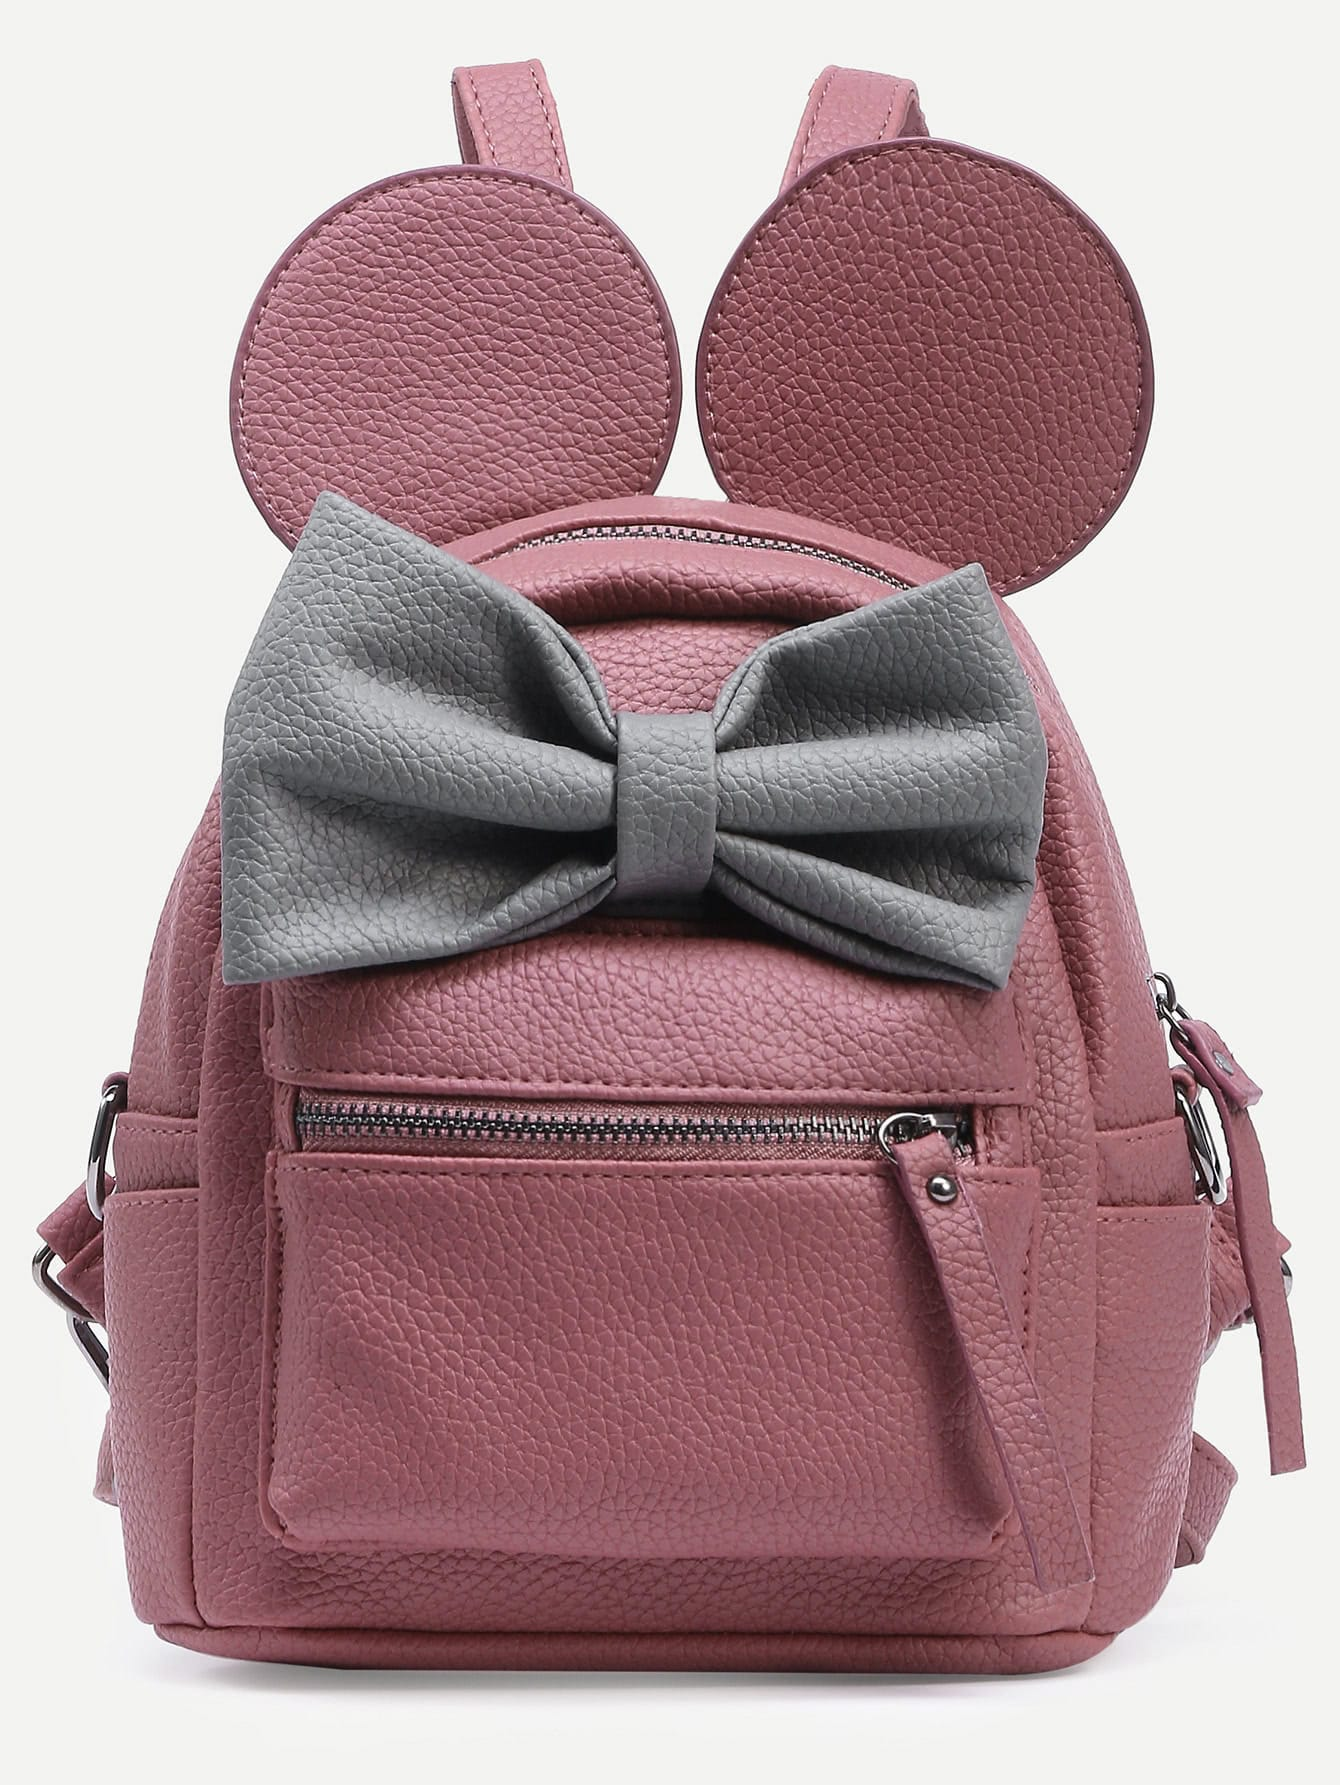 Contrast Bow Mickey Ear Backpack